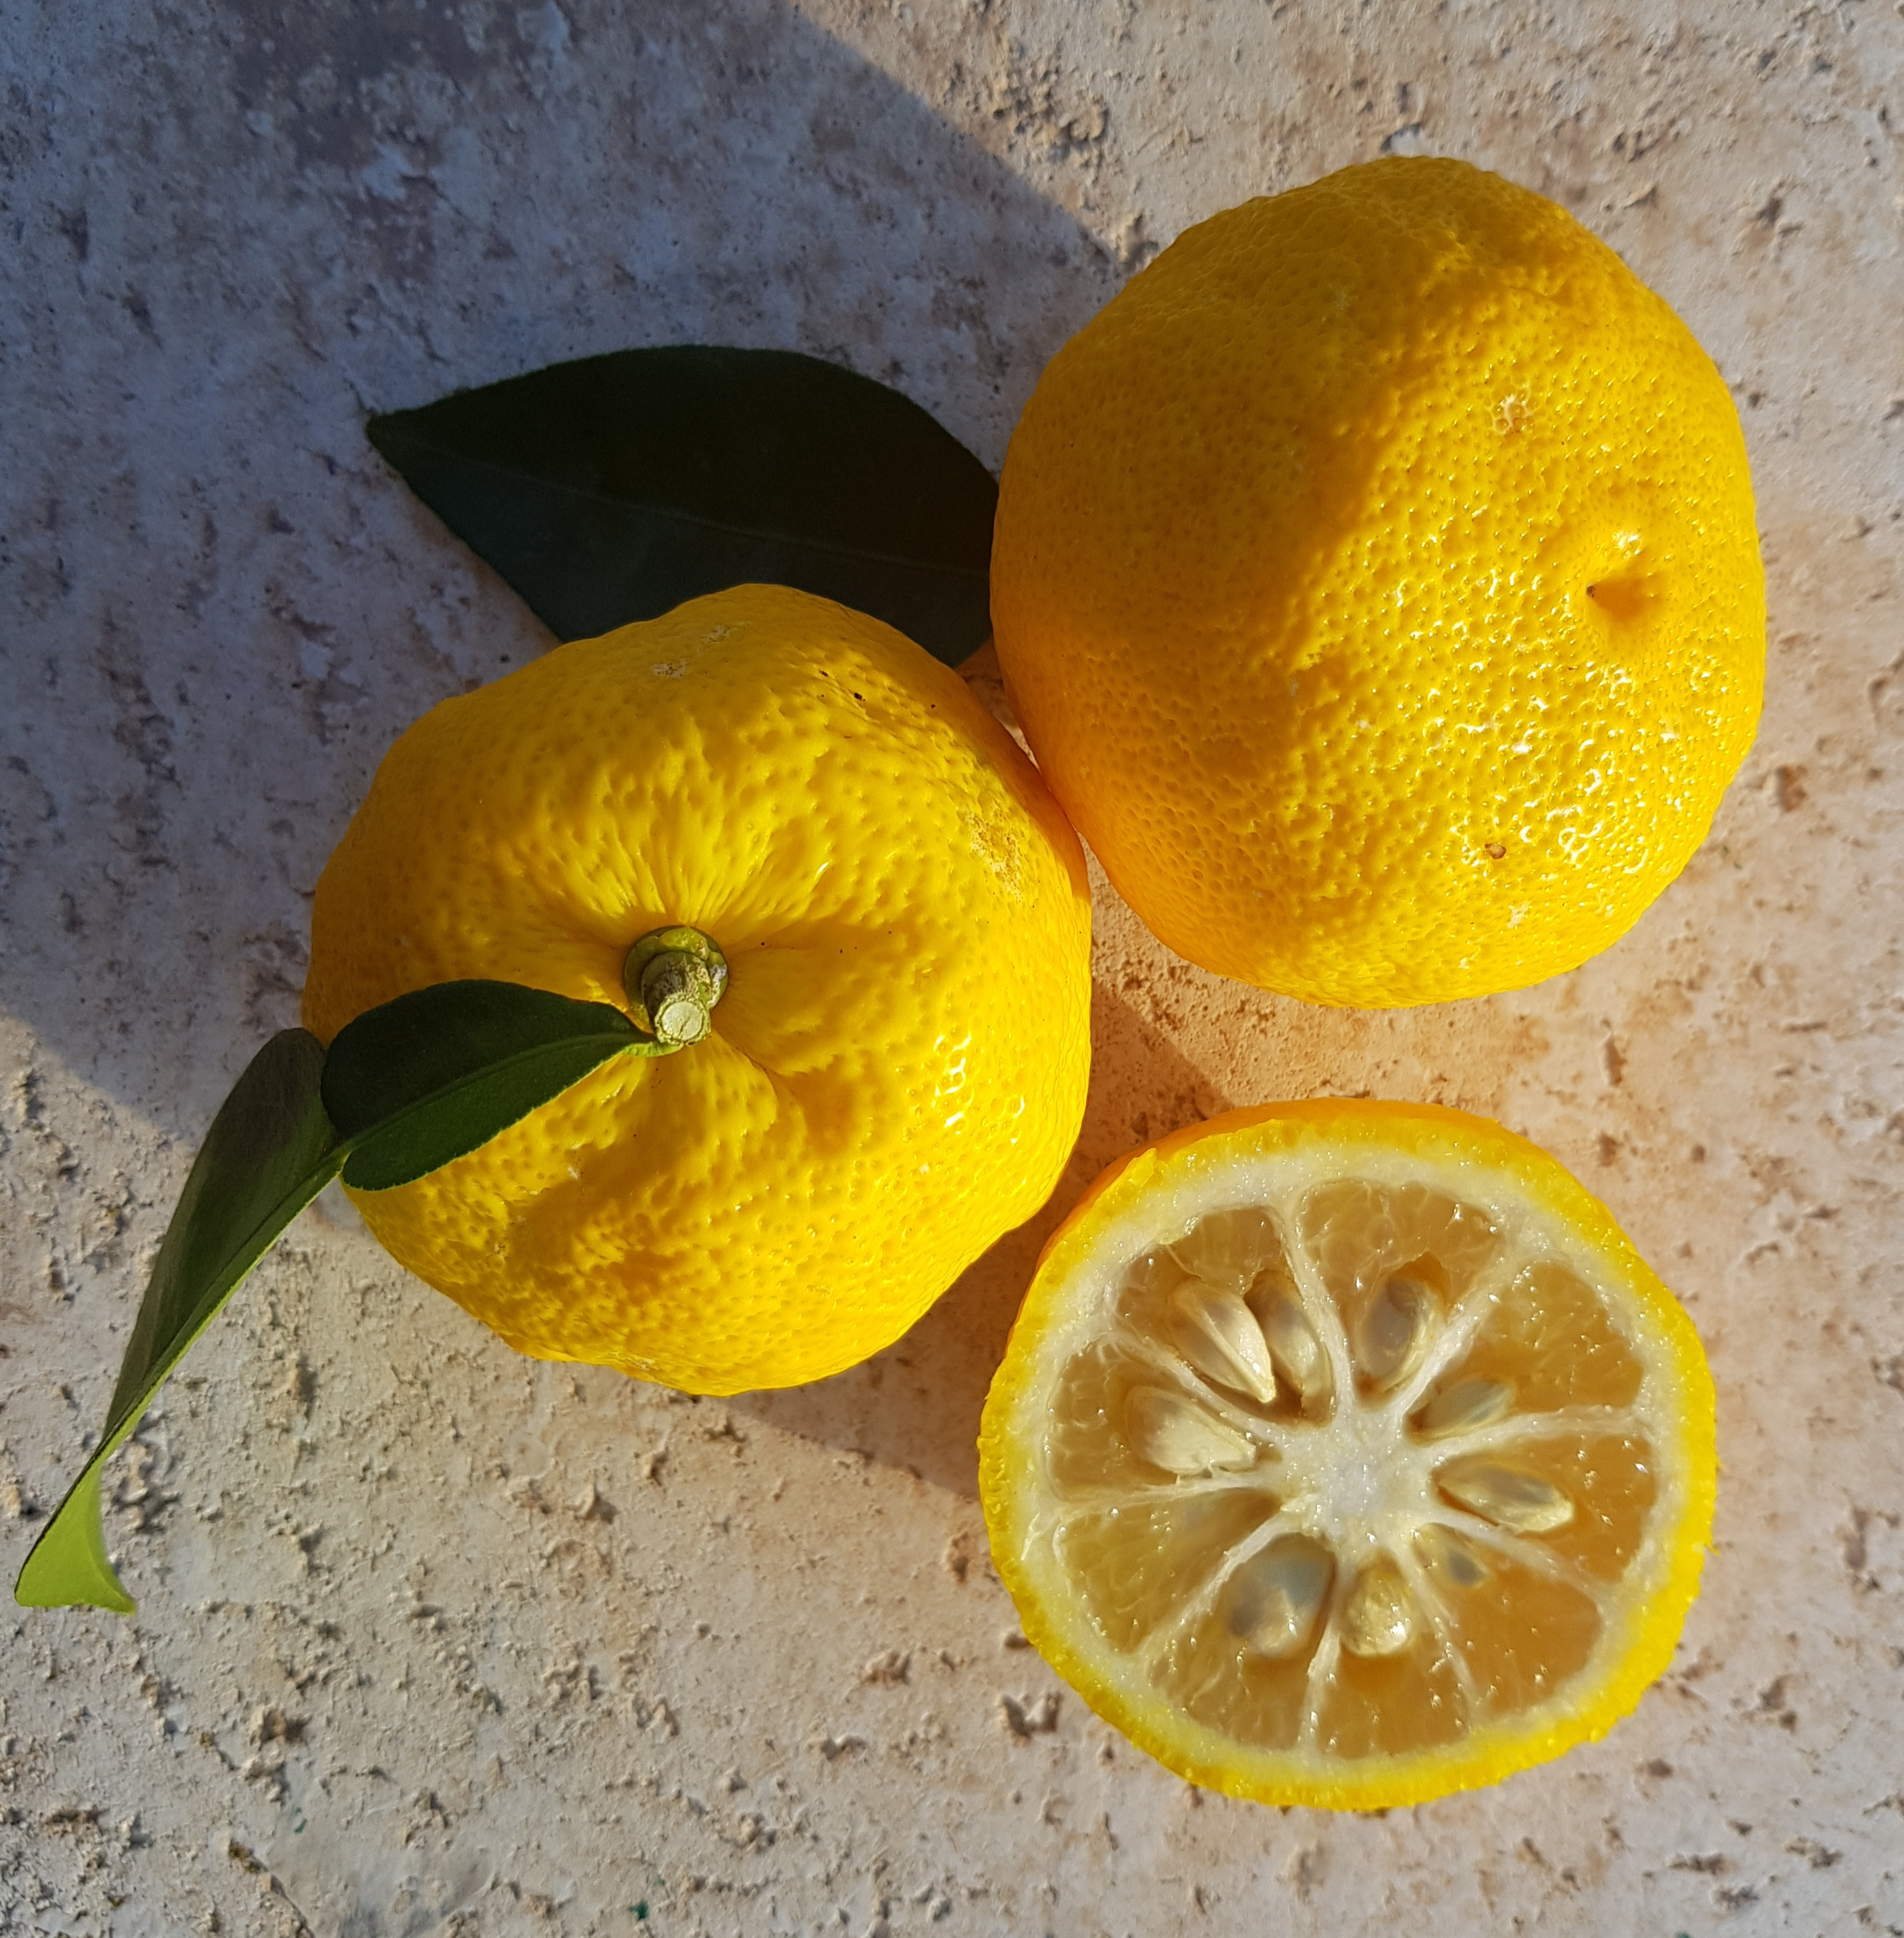 Skin and flesh colour resembles that of a lemon.